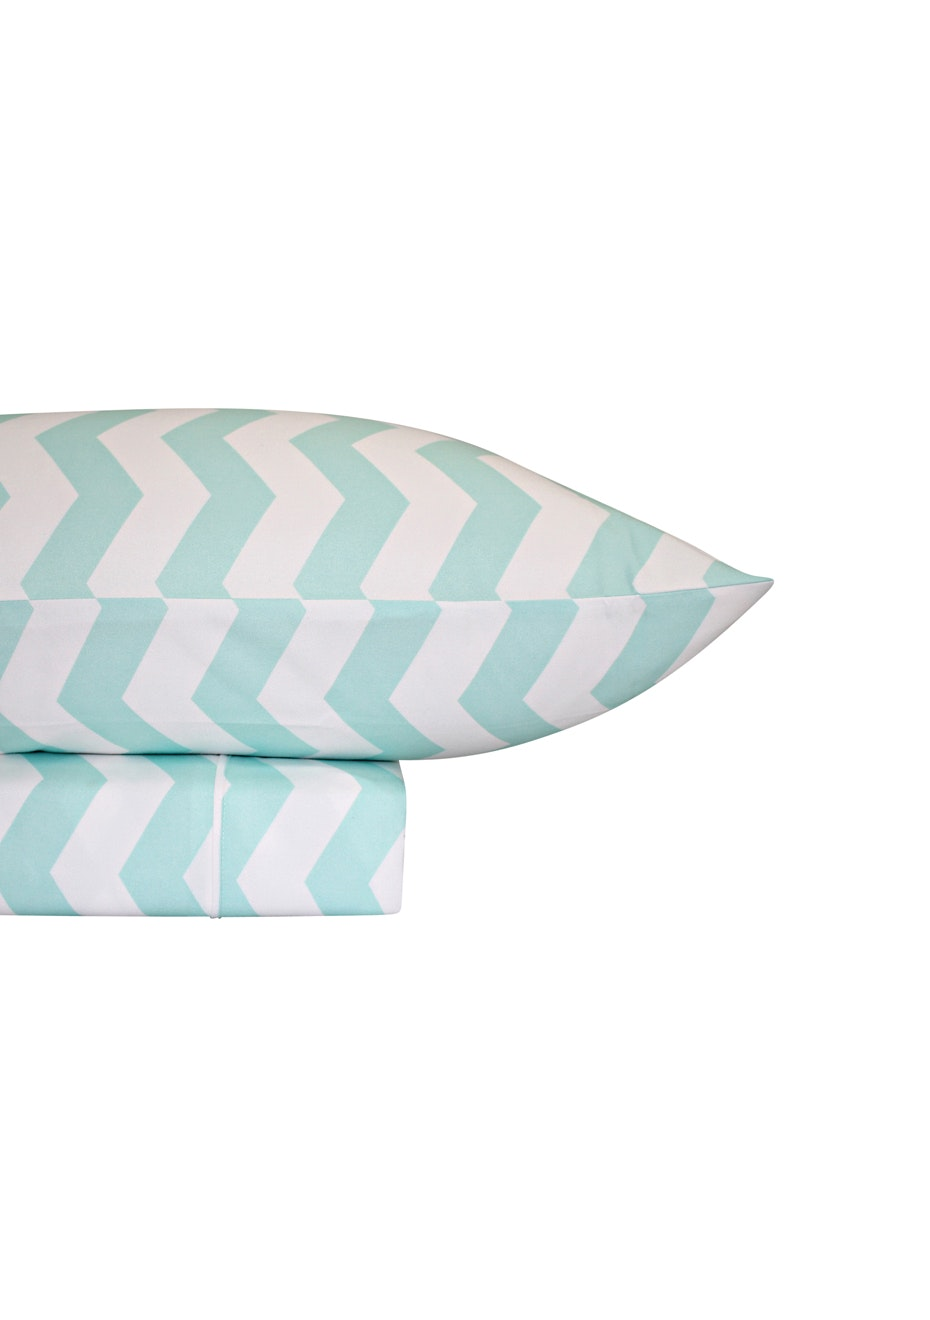 Thermal Flannel Sheet Sets - Chevron Design - Ice - Queen Bed